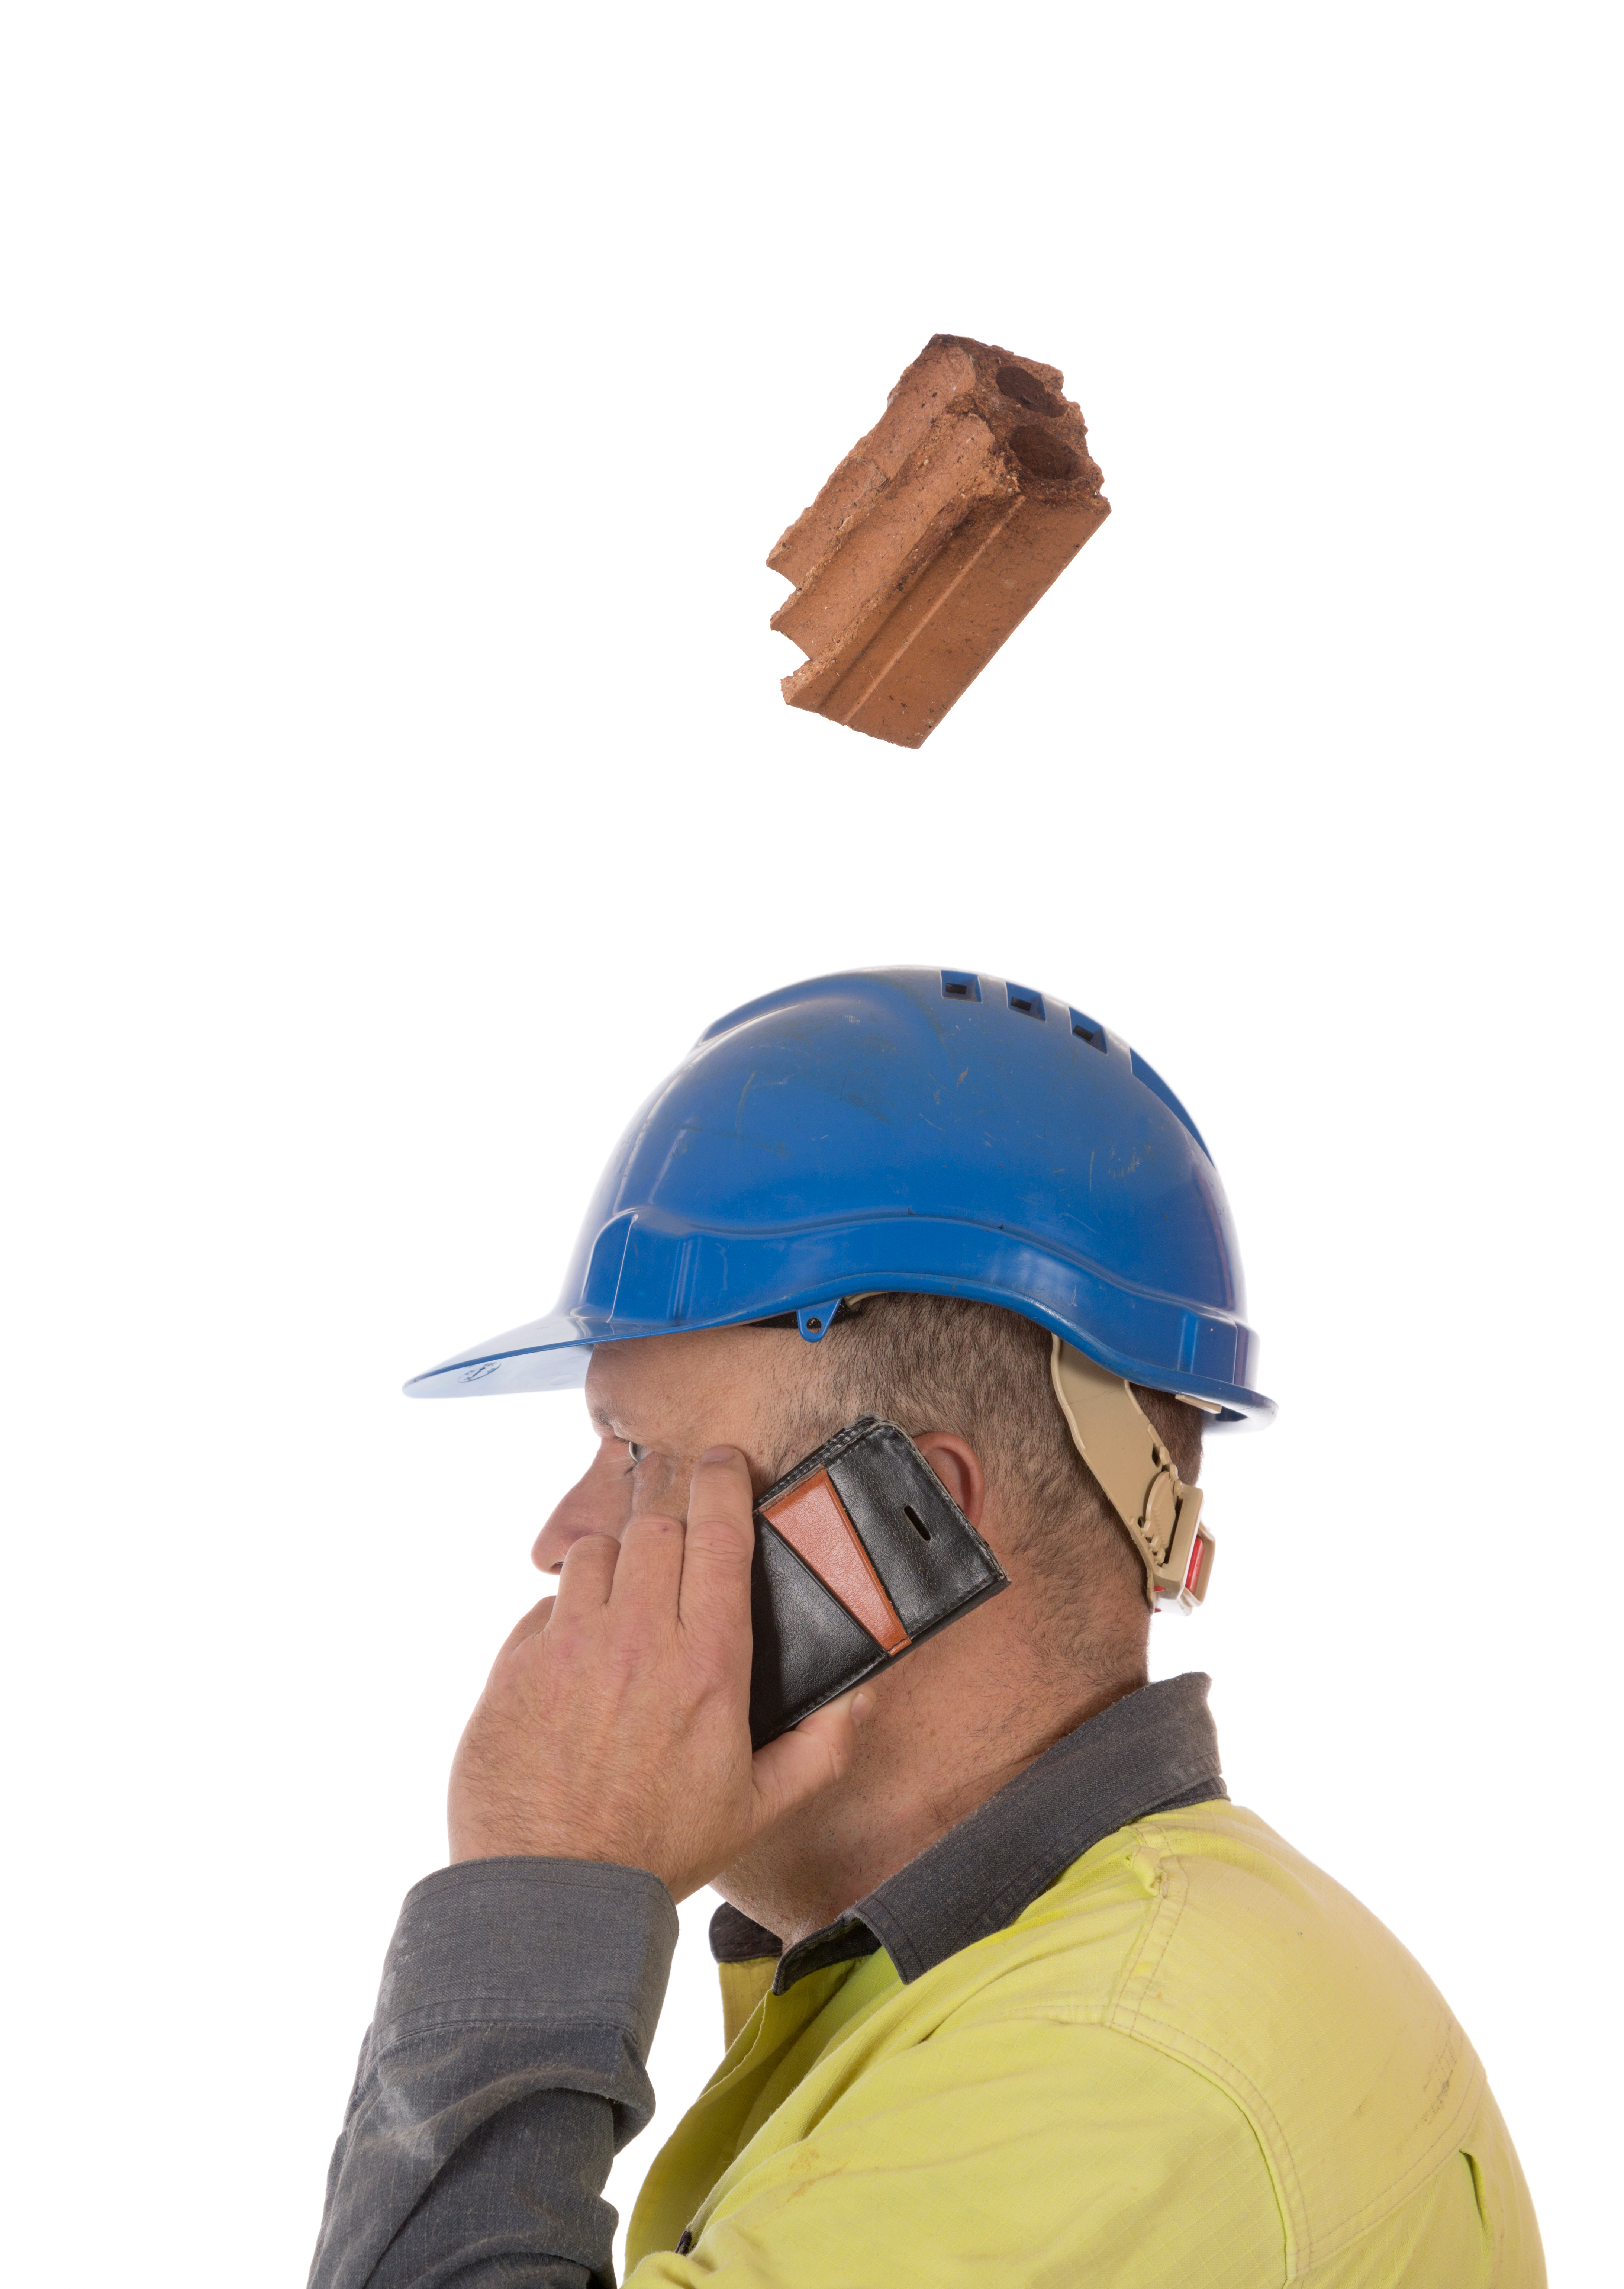 INJURIES DUE TO FALLING MATERIAL ON CONSTRUCTION SITES